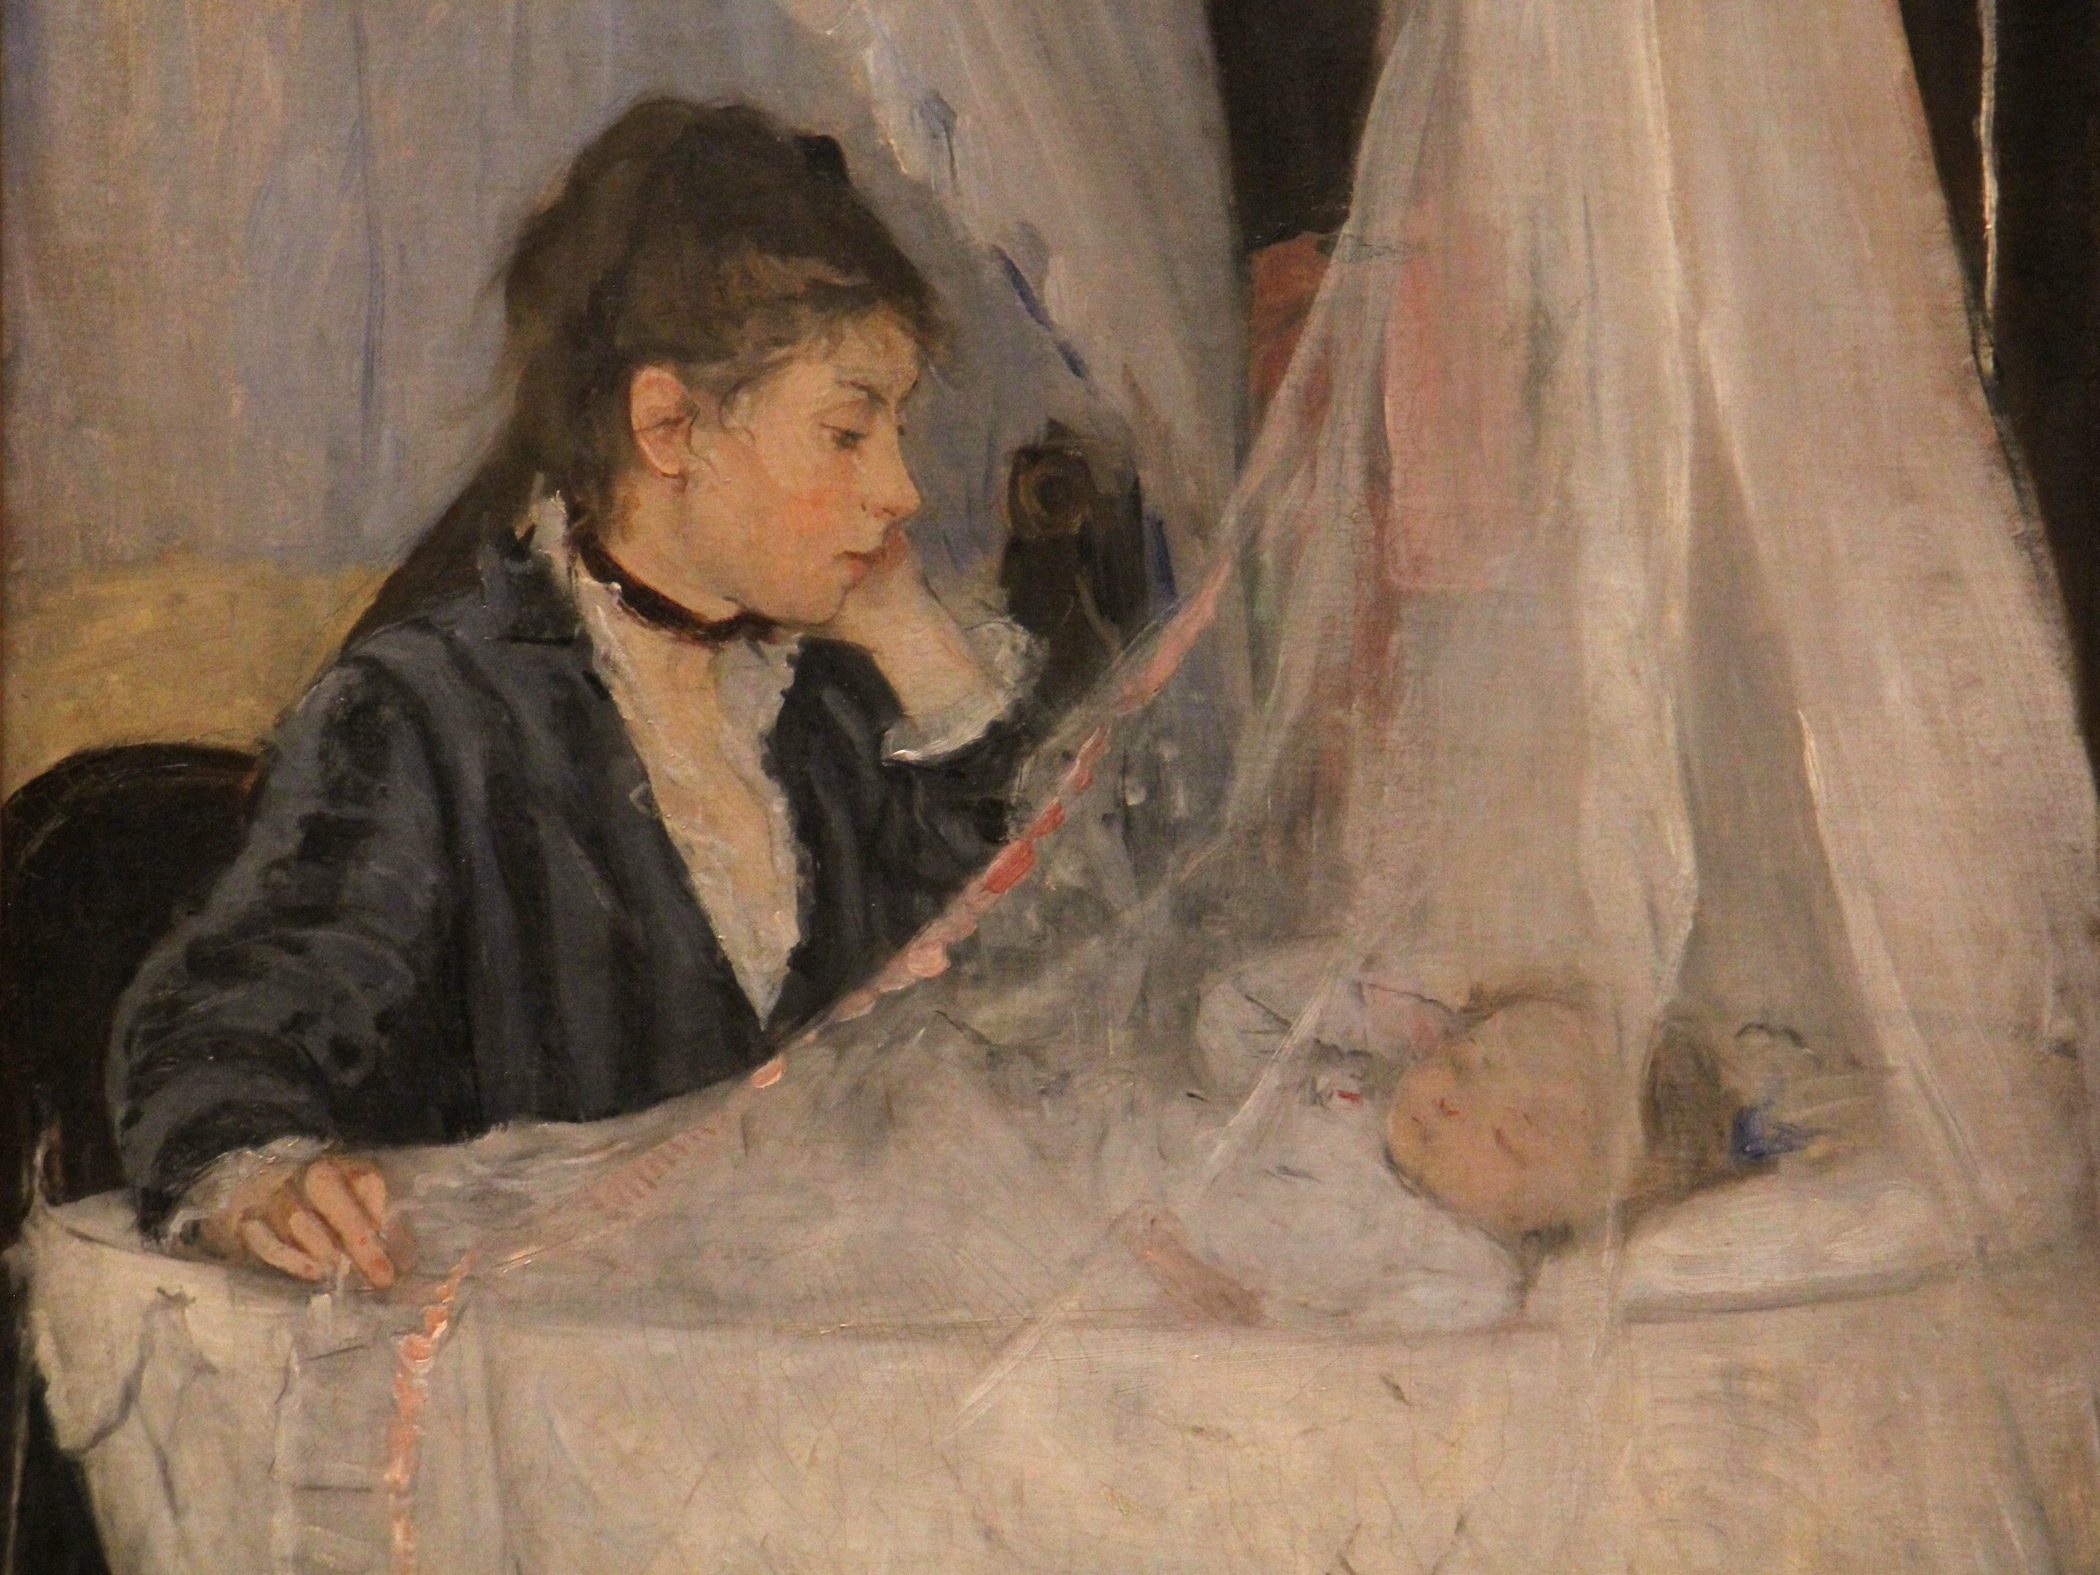 Nearly forgotten French impressionist regains her moment in Philadelphia exhibit